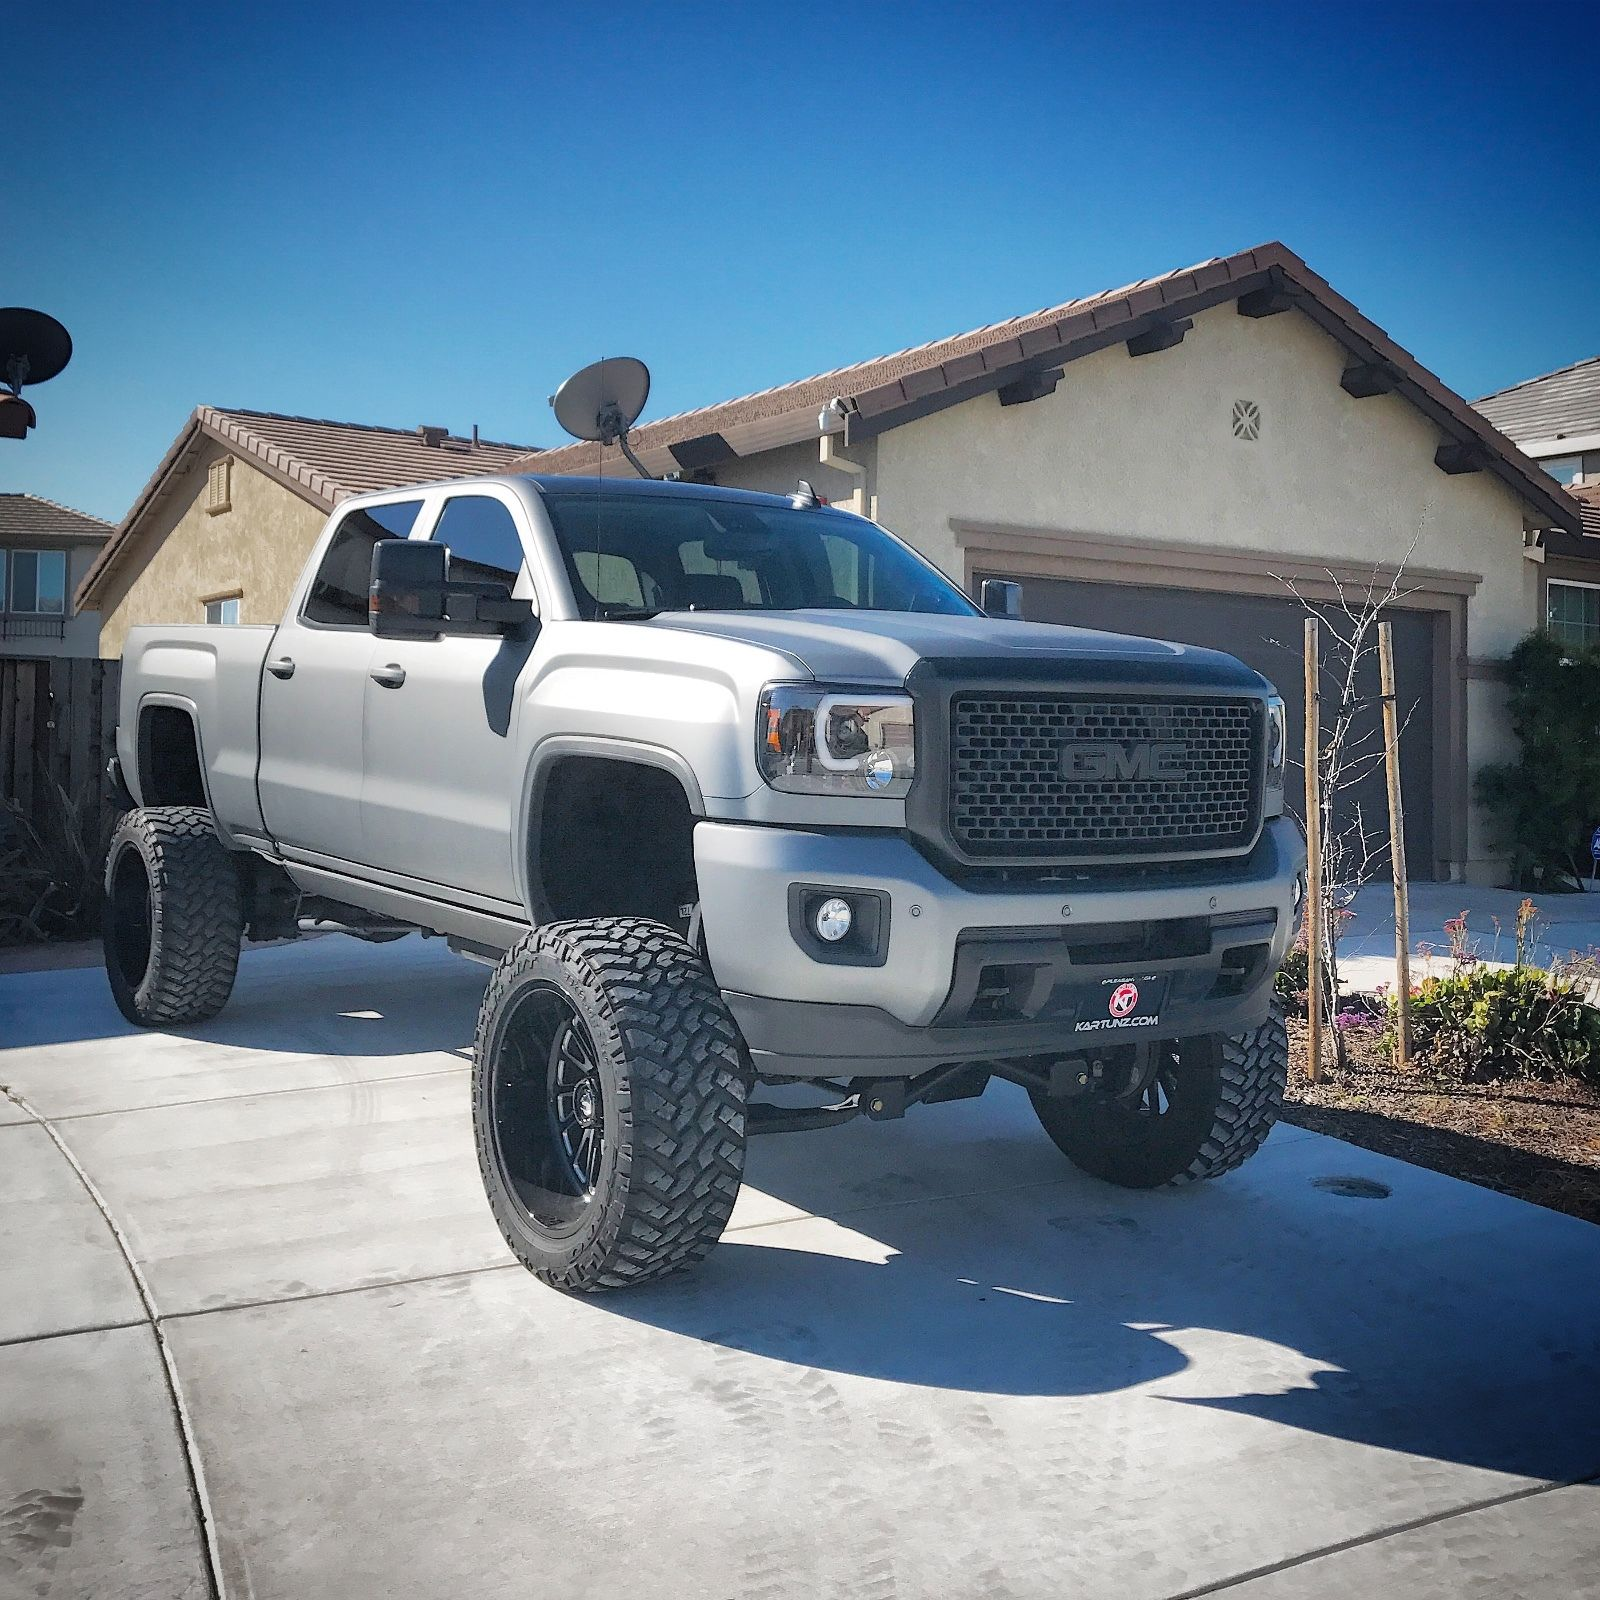 Trucks For Sale In California >> Low mileage 2016 GMC Sierra 2500 Denali HD monster for sale